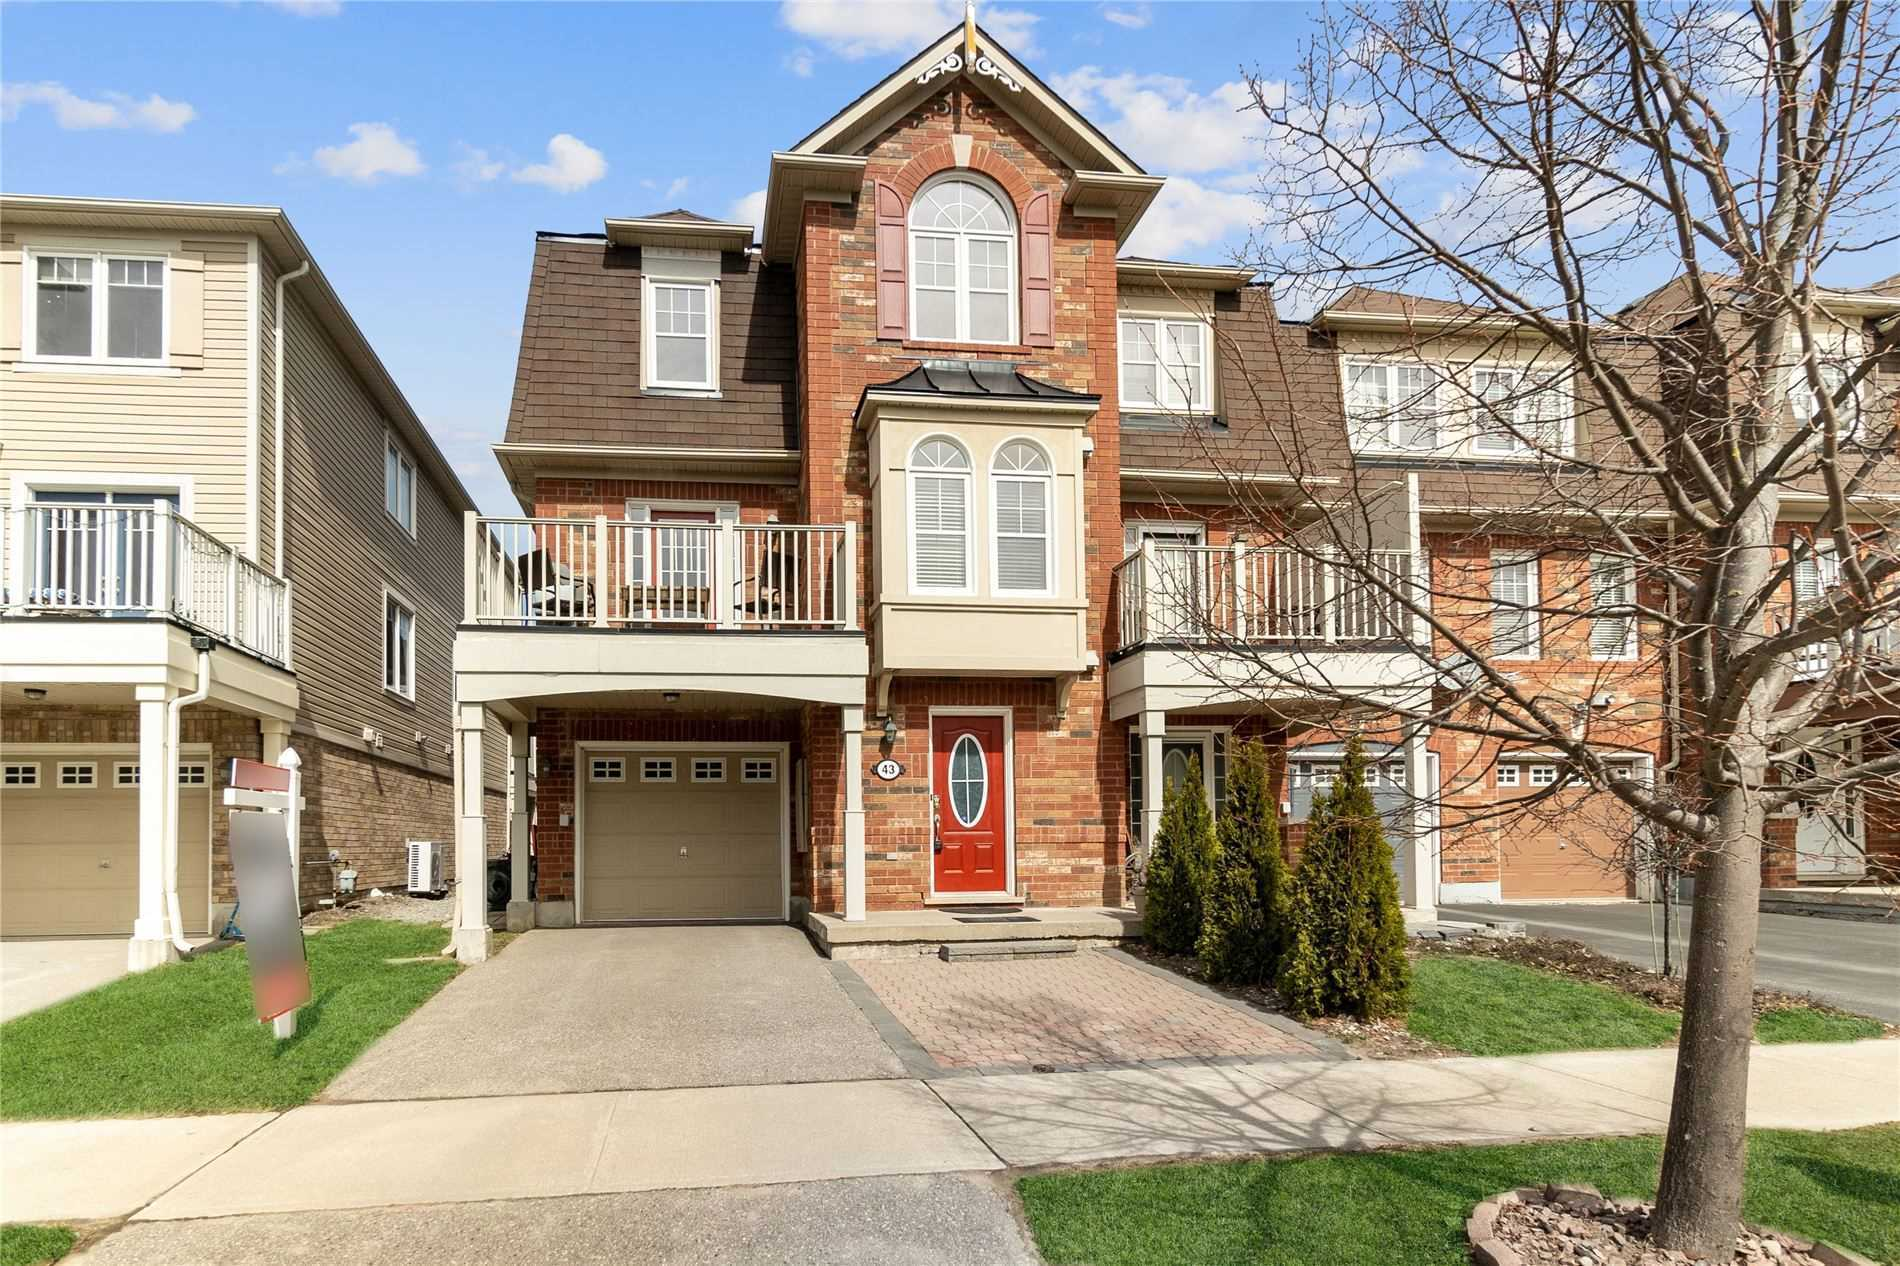 pictures of house for sale MLS: N5239764 located at 43 Miltrose Cres, Whitchurch-Stouffville L4A0P8